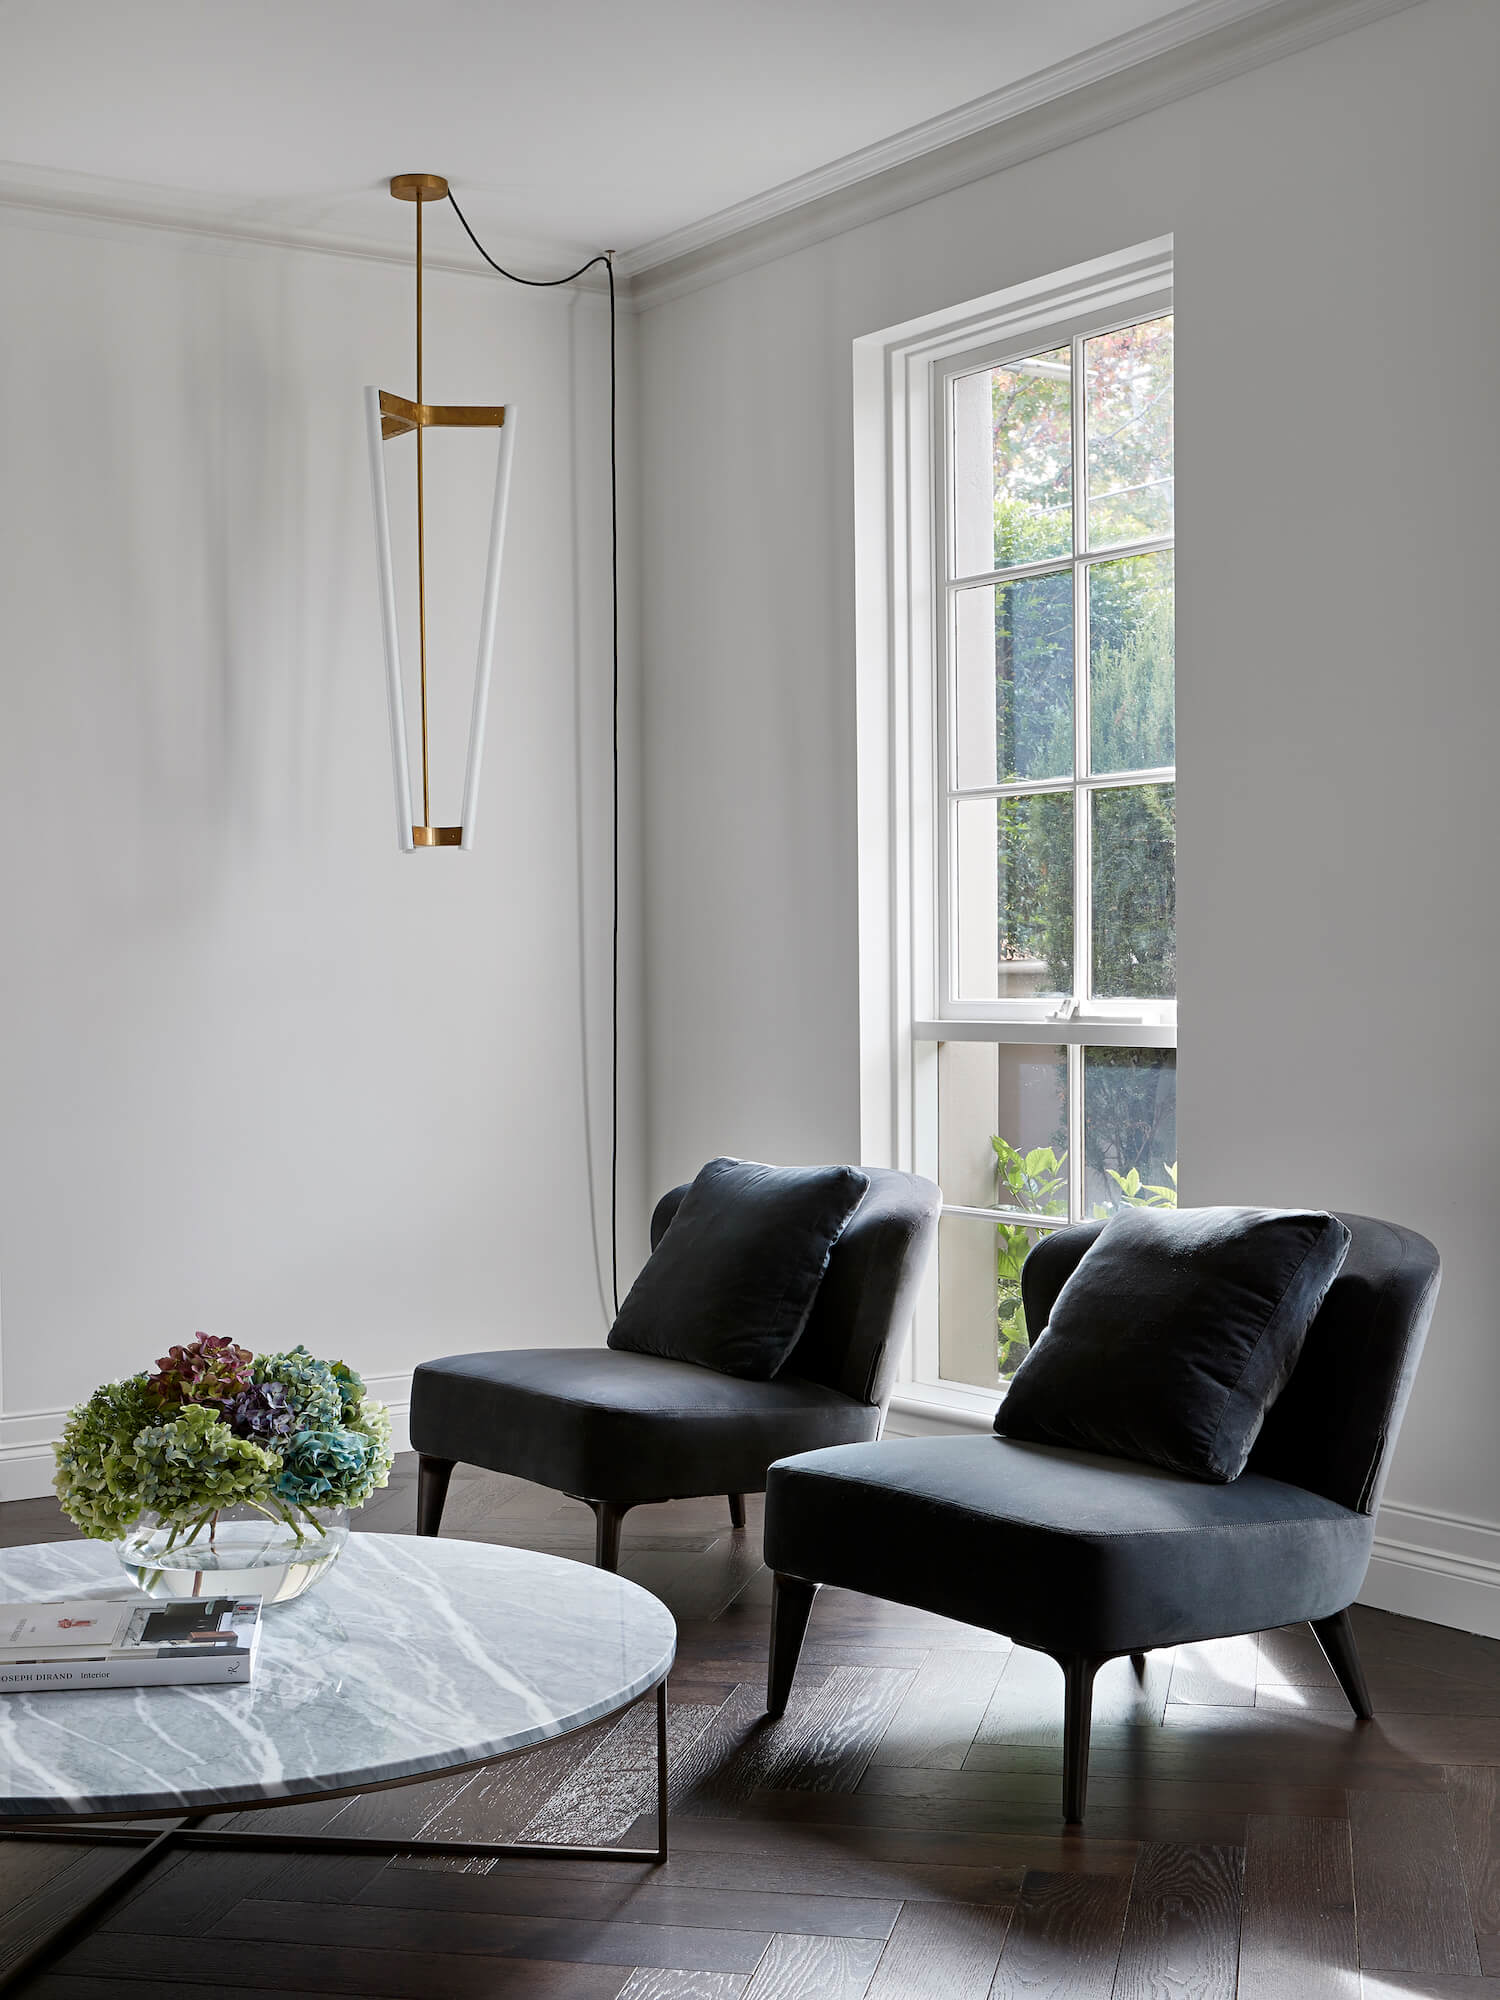 est living interiors 17 Glen Road Toorak Lauren Tarrant Design 2